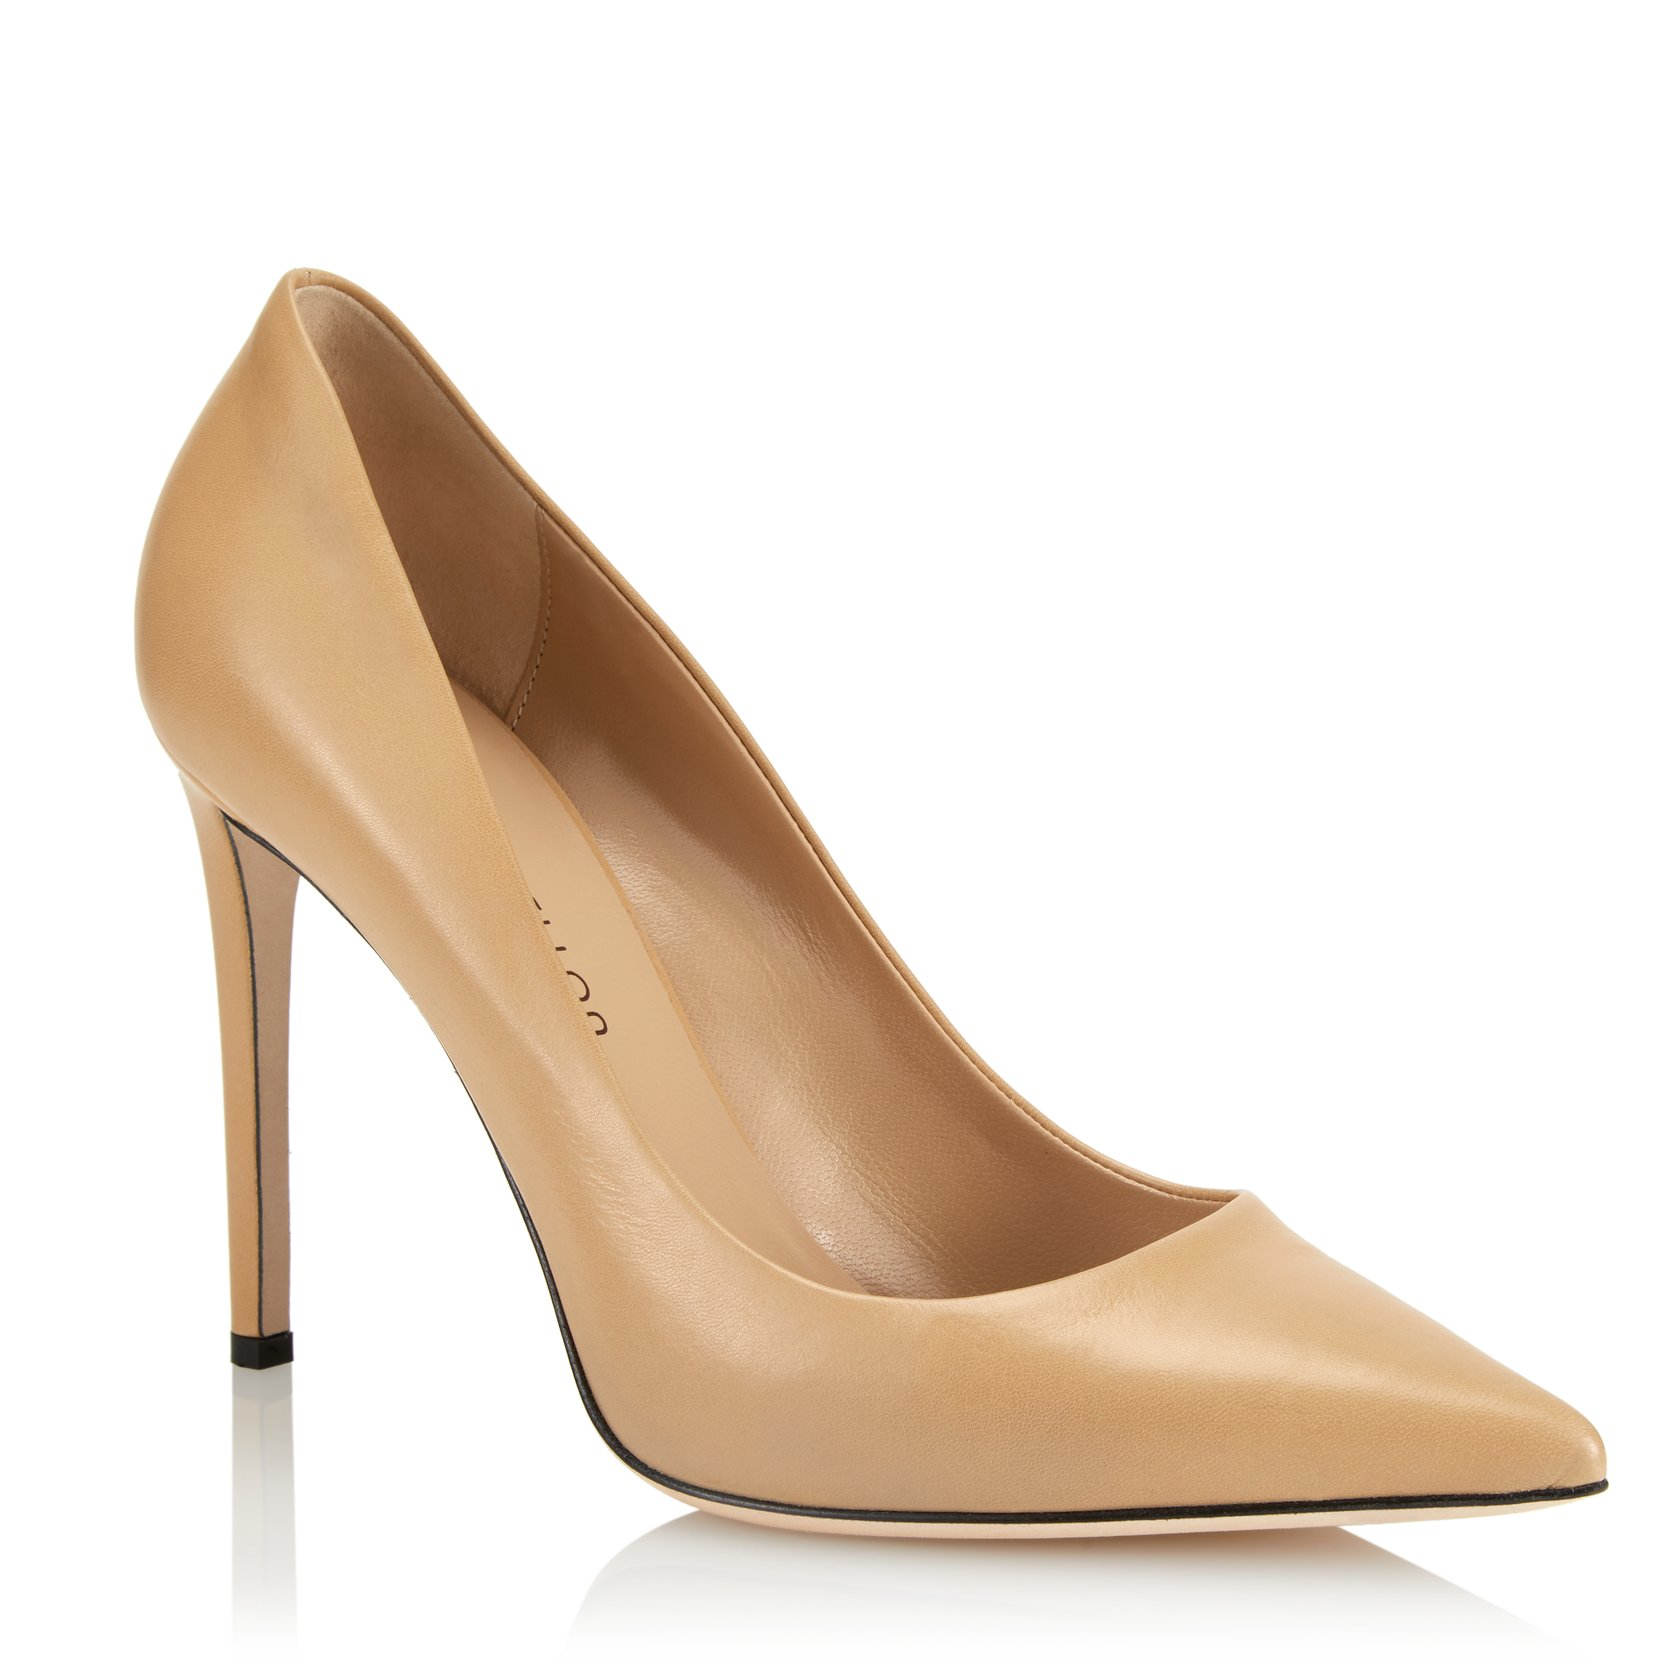 Tamara Mellon Rebel Pump in Capretto